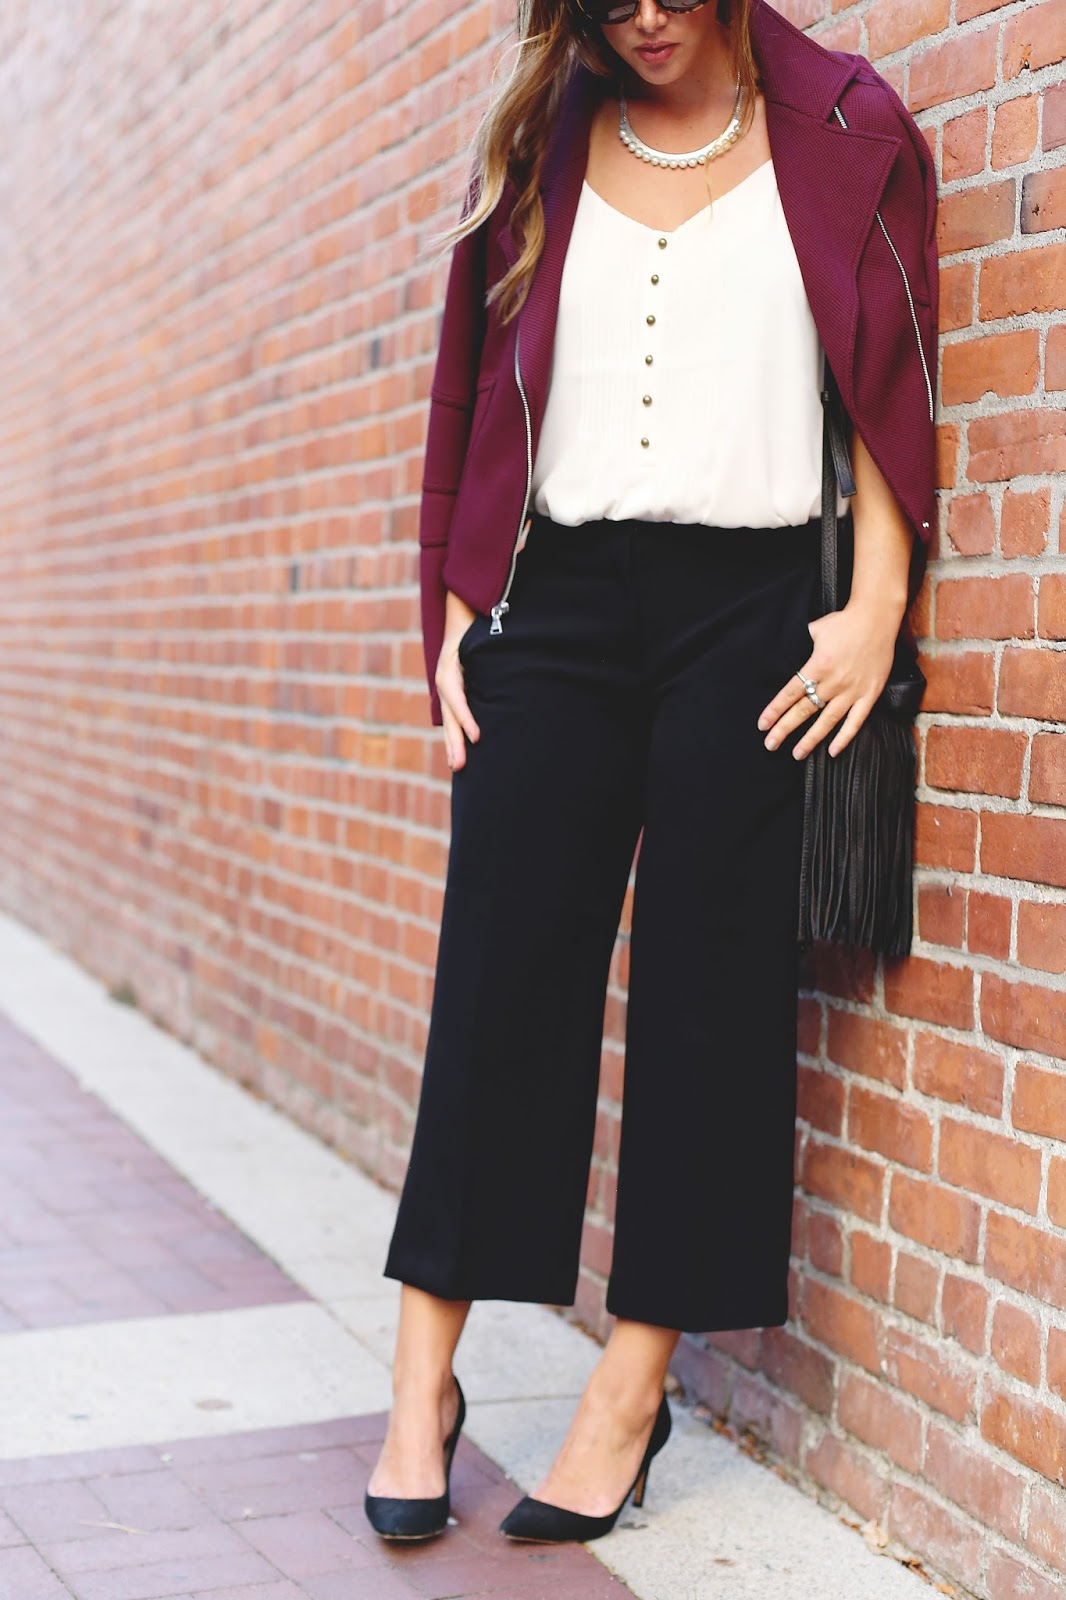 culottes-styling-tips